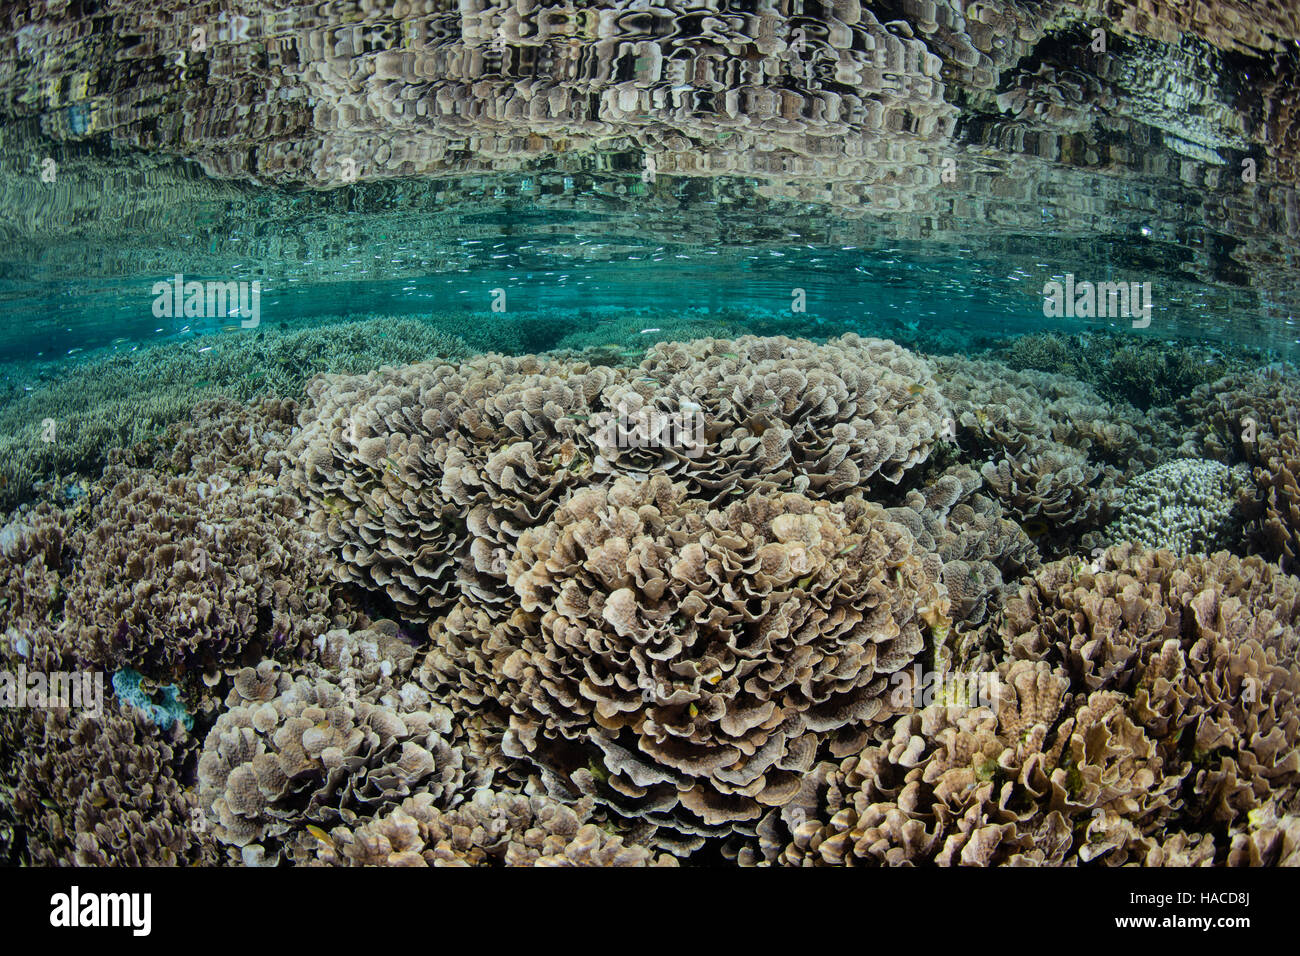 A healthy and biodiverse array of corals grows in the shallows near a small island within Komodo National Park, Stock Photo